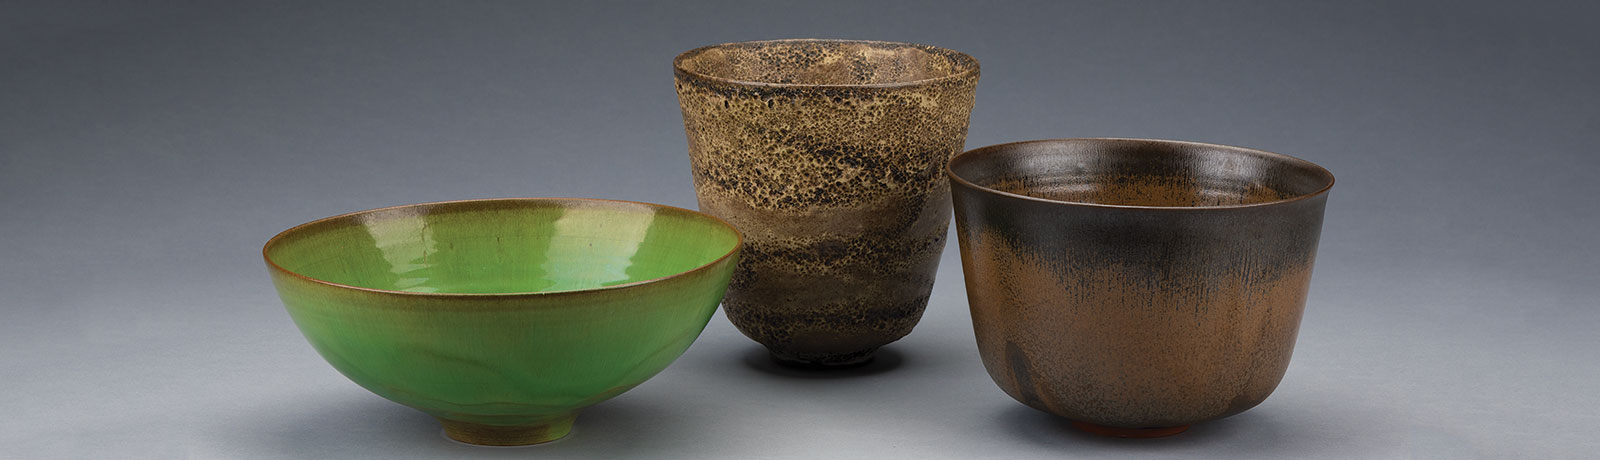 E. John Bullard's collection of American Studio Pottery from the latter half of the twentieth century is on display through July 8th.